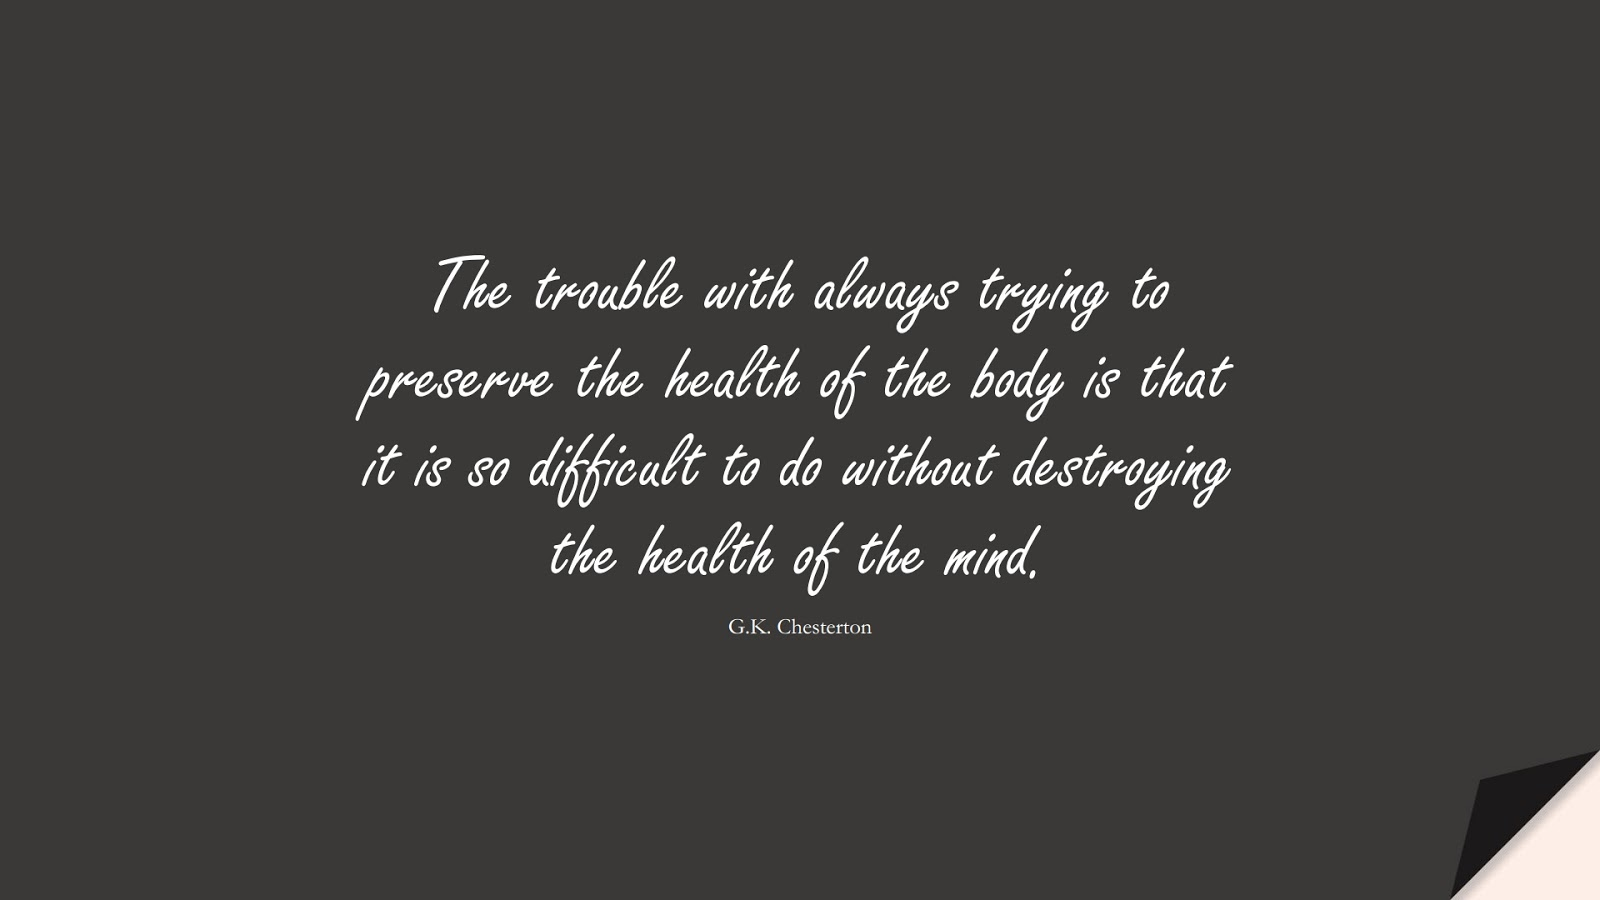 The trouble with always trying to preserve the health of the body is that it is so difficult to do without destroying the health of the mind. (G.K. Chesterton);  #HealthQuotes